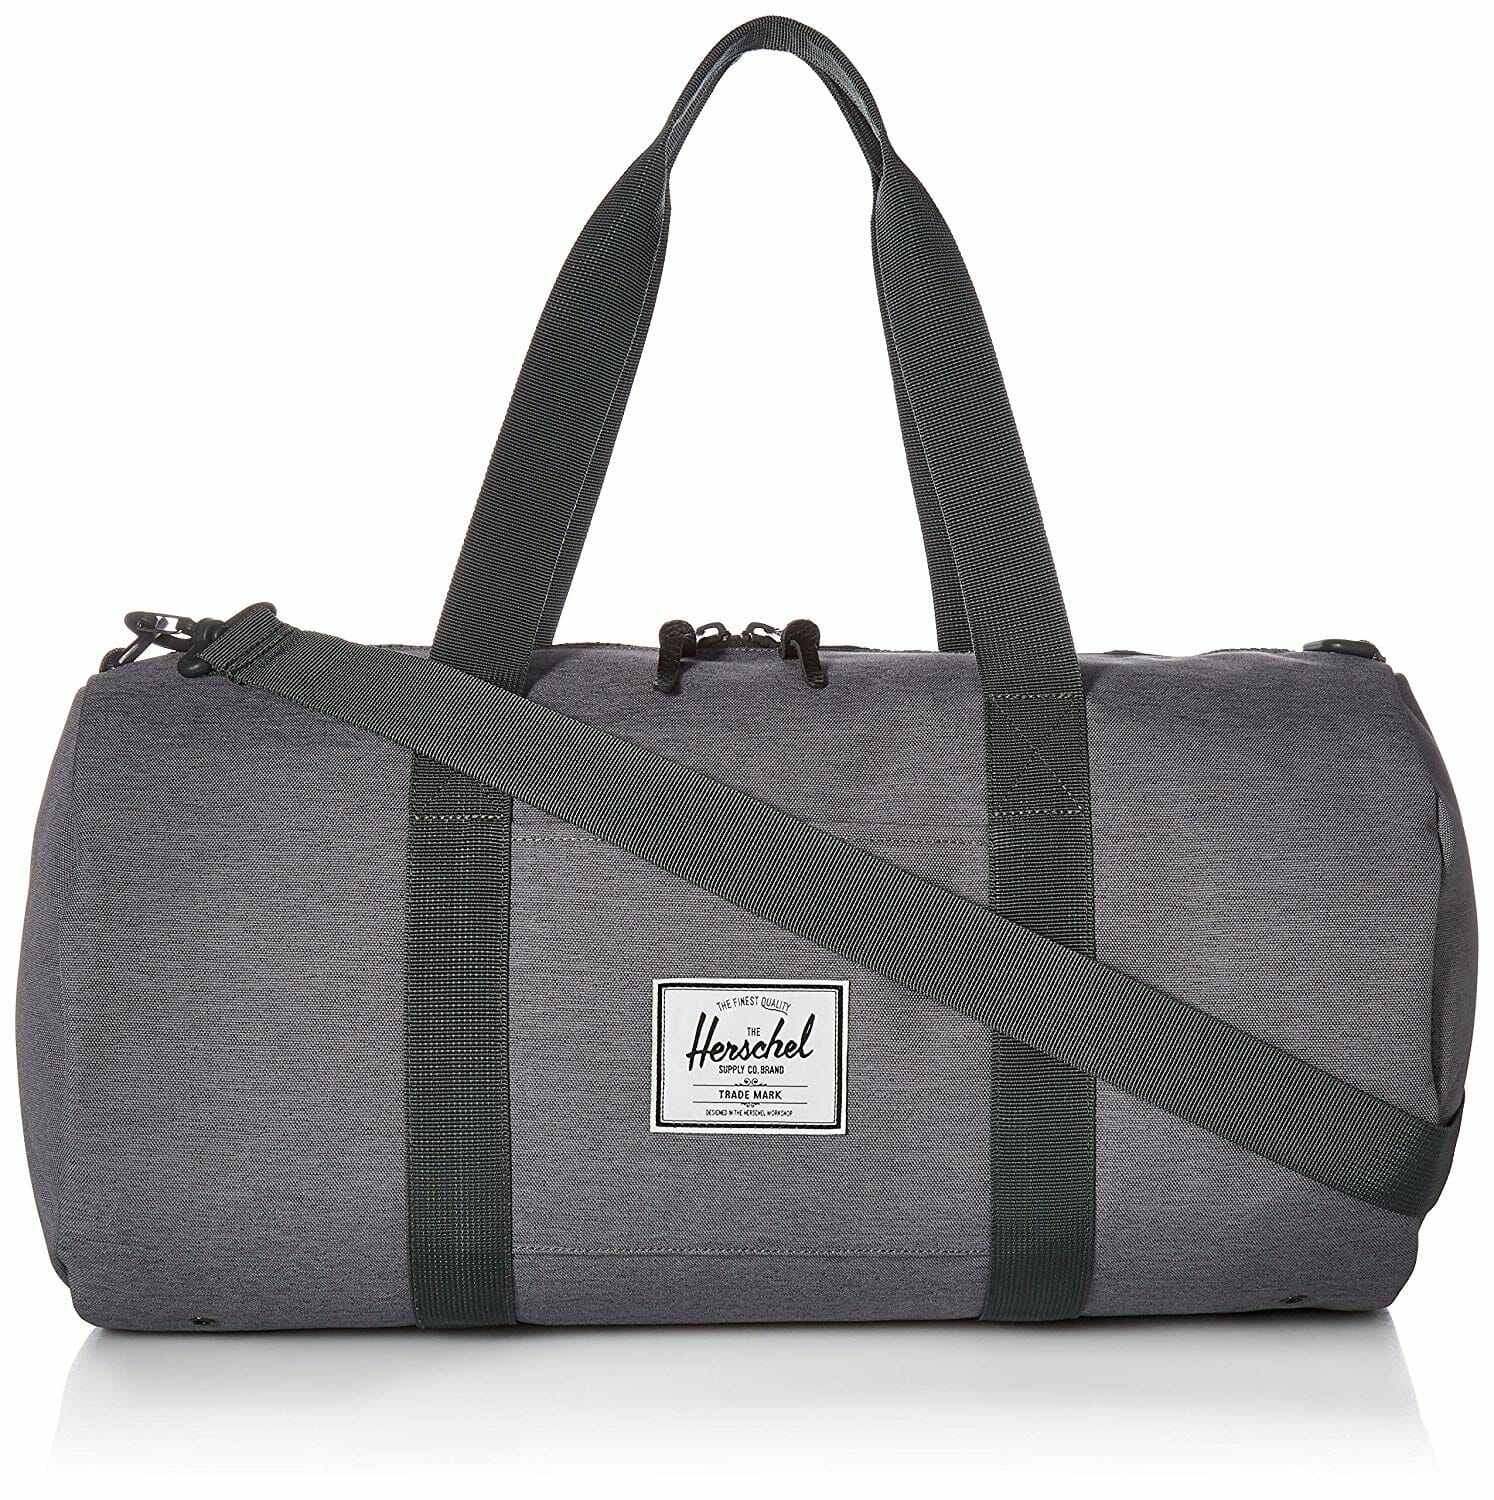 groomsmen-gifts-duffle-bag